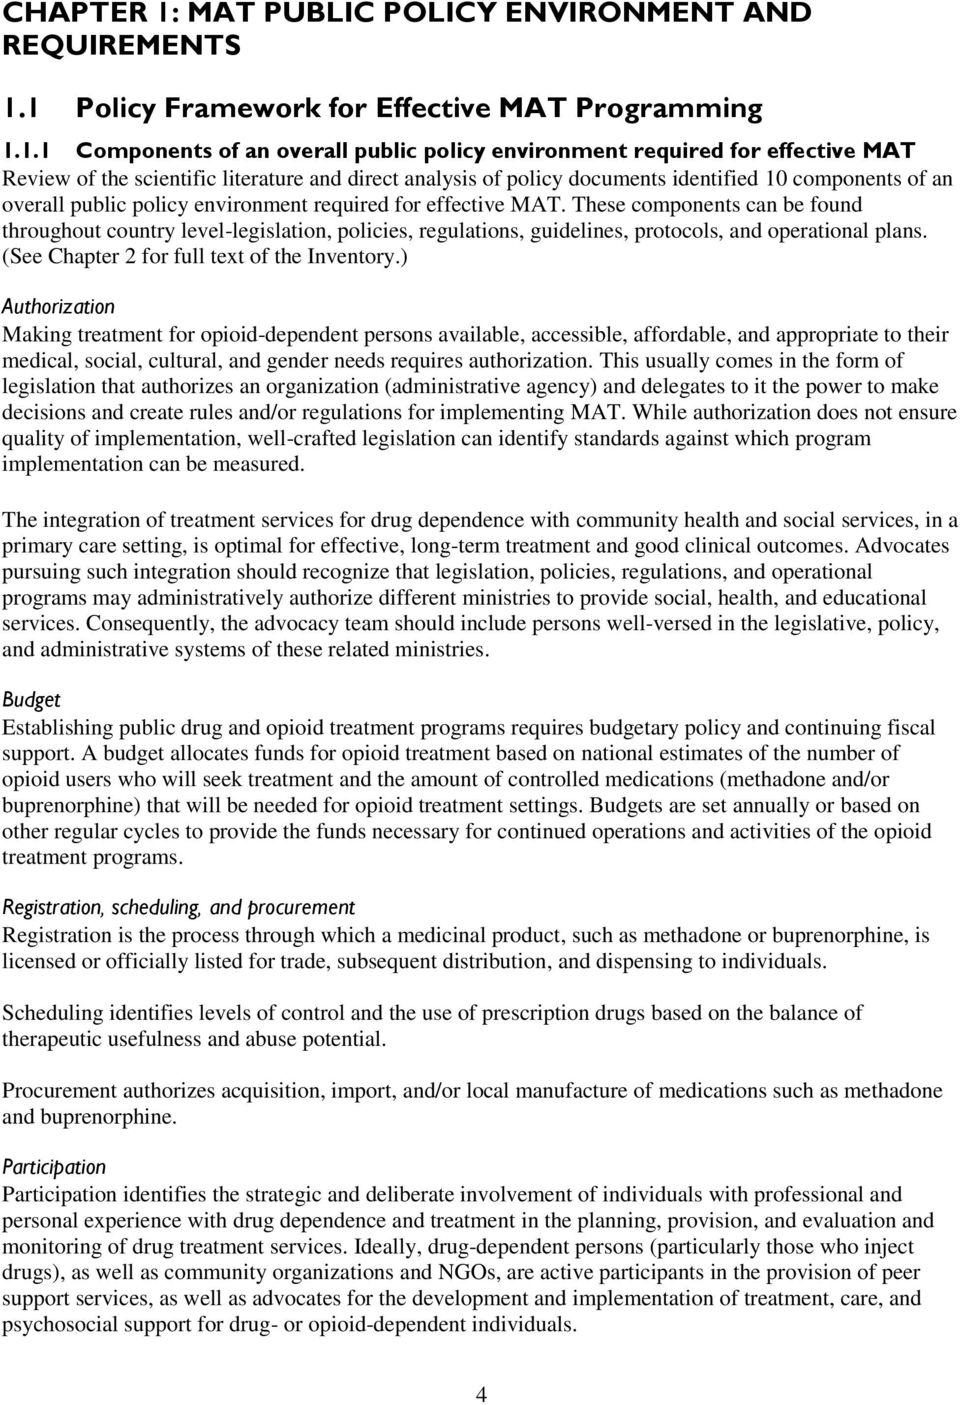 1 Policy Framework for Effective MAT Programming 1.1.1 Components of an overall public policy environment required for effective MAT Review of the scientific literature and direct analysis of policy